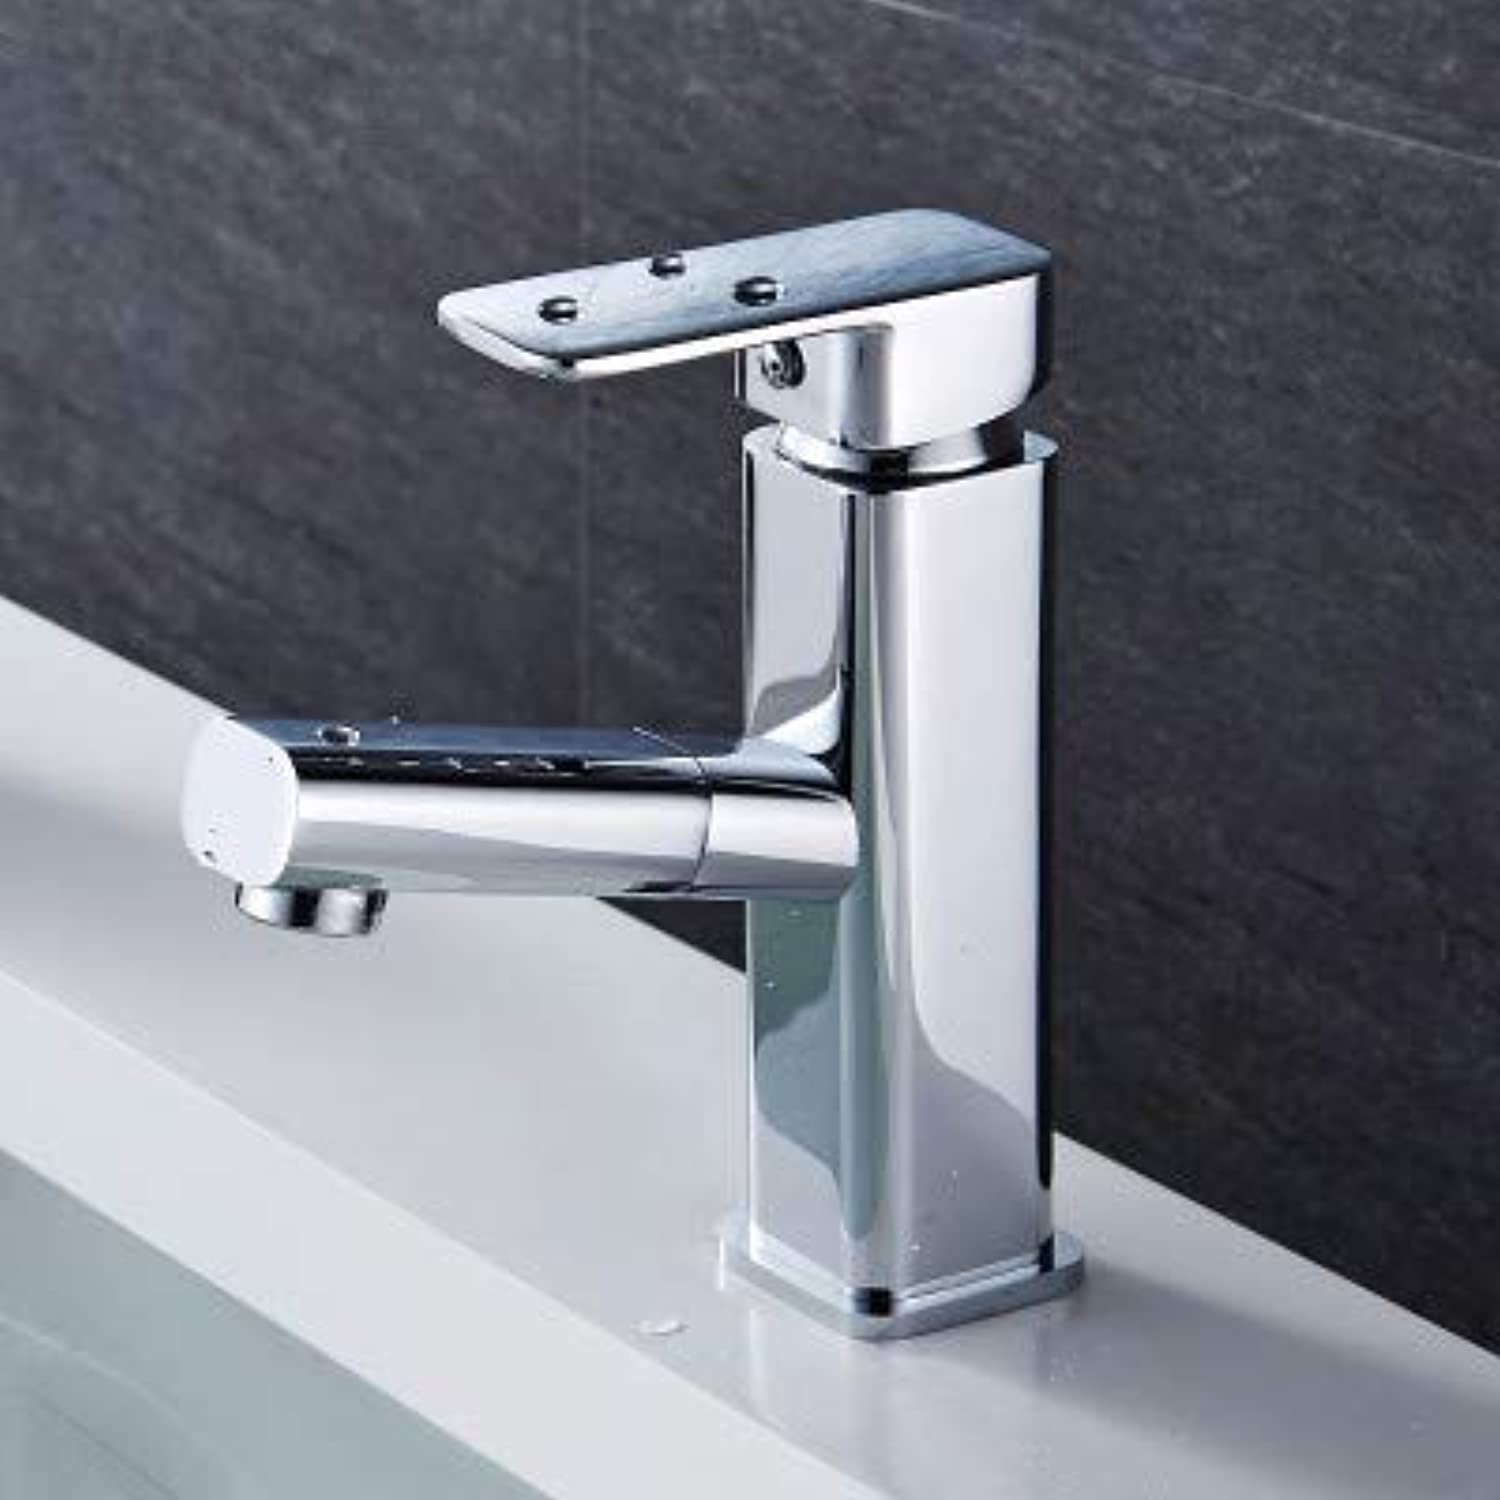 Kitchen Tap Copper Bathroom Single Hole Basin Faucet Hot and Cold Wash Basin Pull Faucet Kitchen Taps Kitchen Sink Mixer Taps Basin Tap